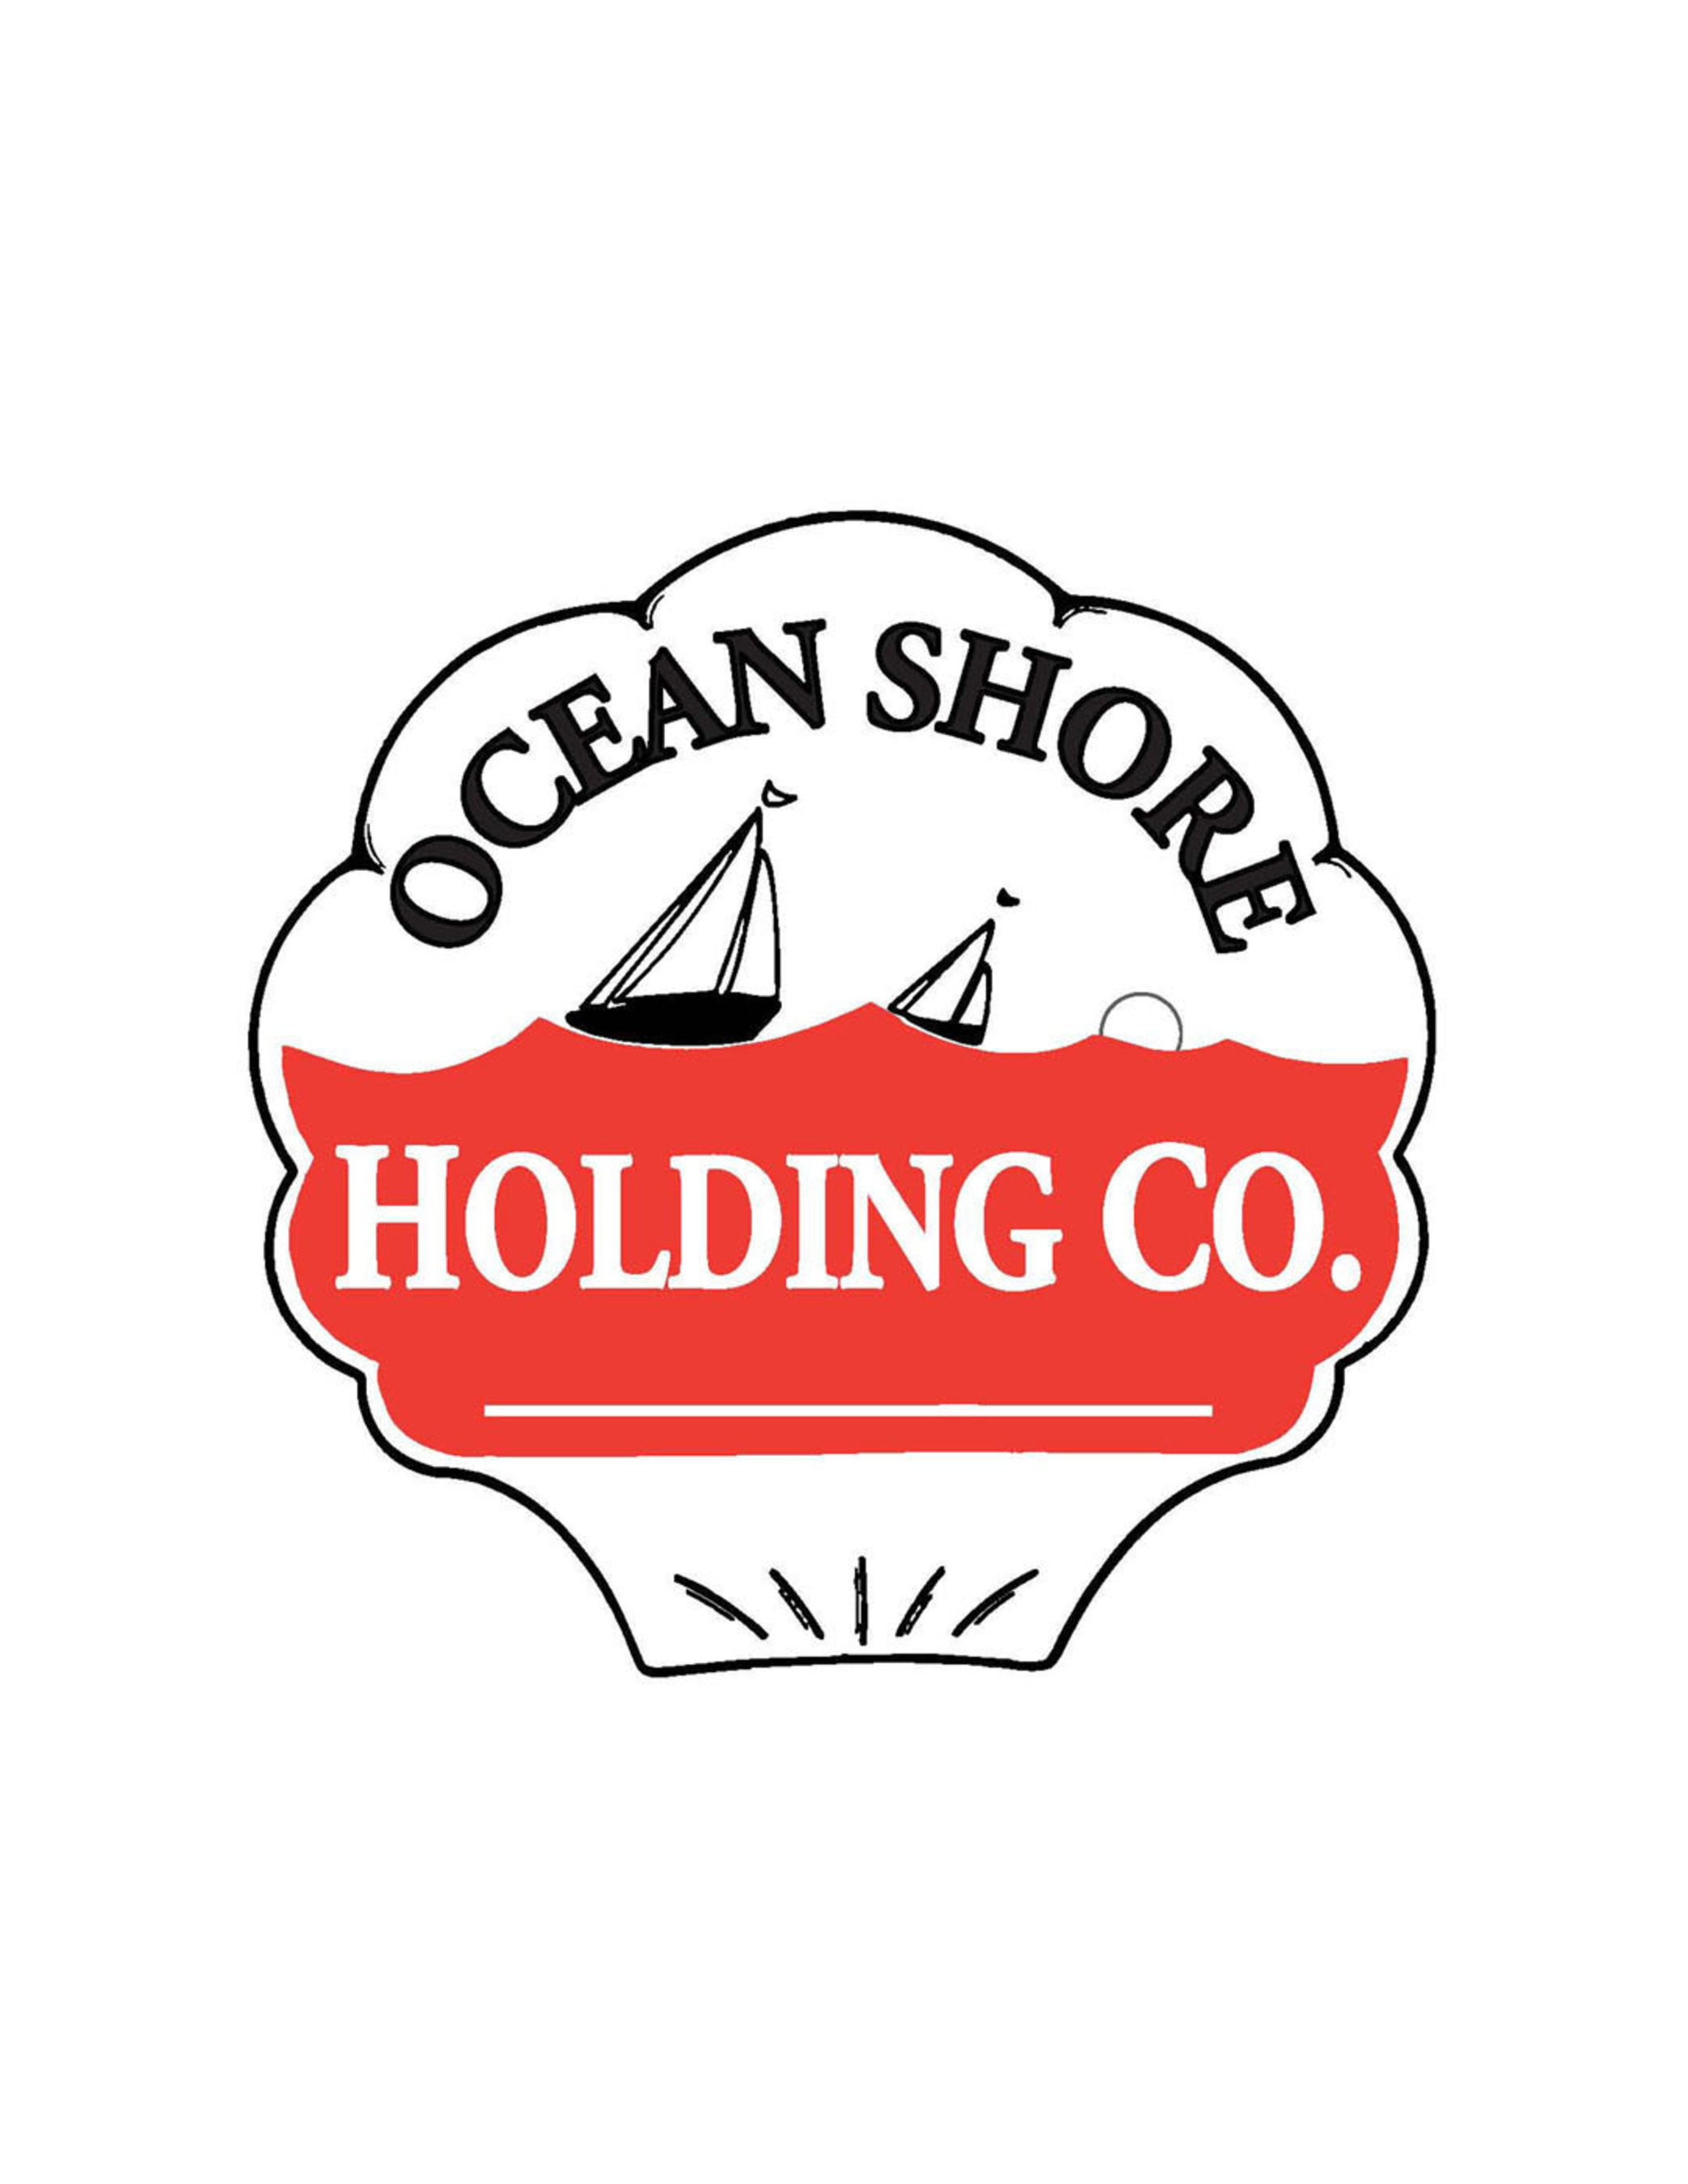 Ocean Shore Holding Co.